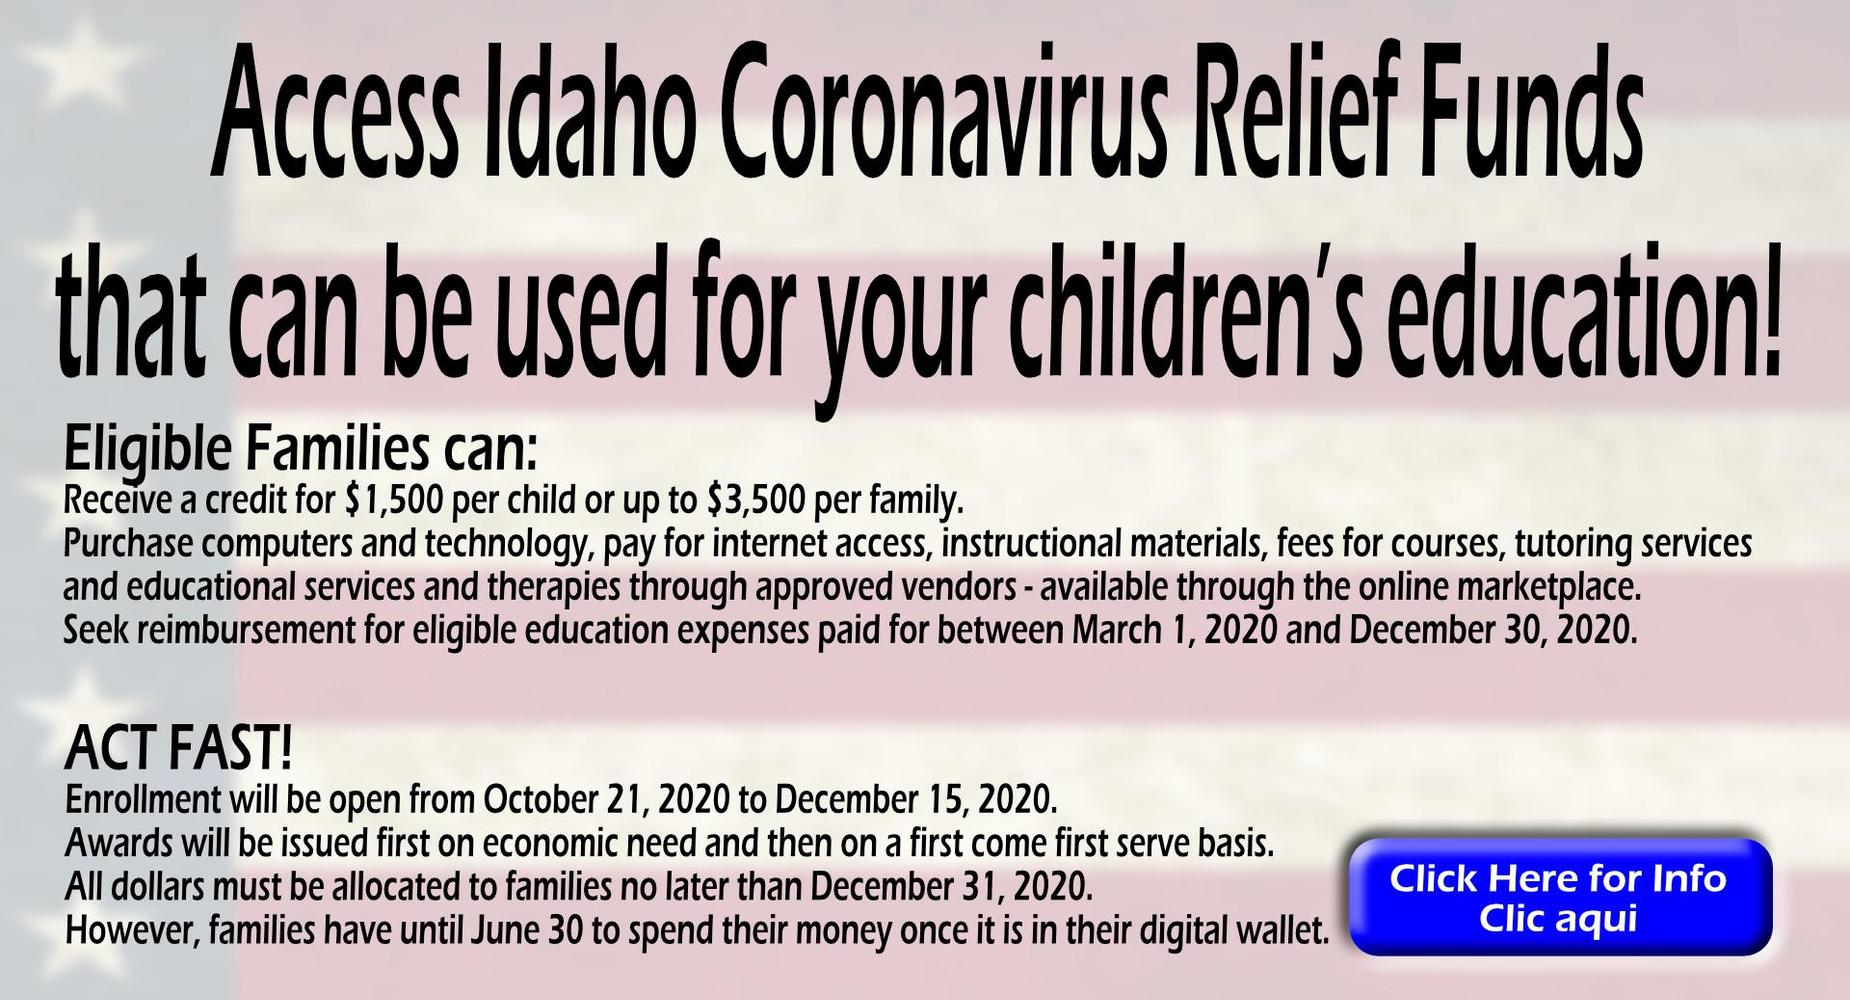 Access Idaho Coronavirus Relief Funds